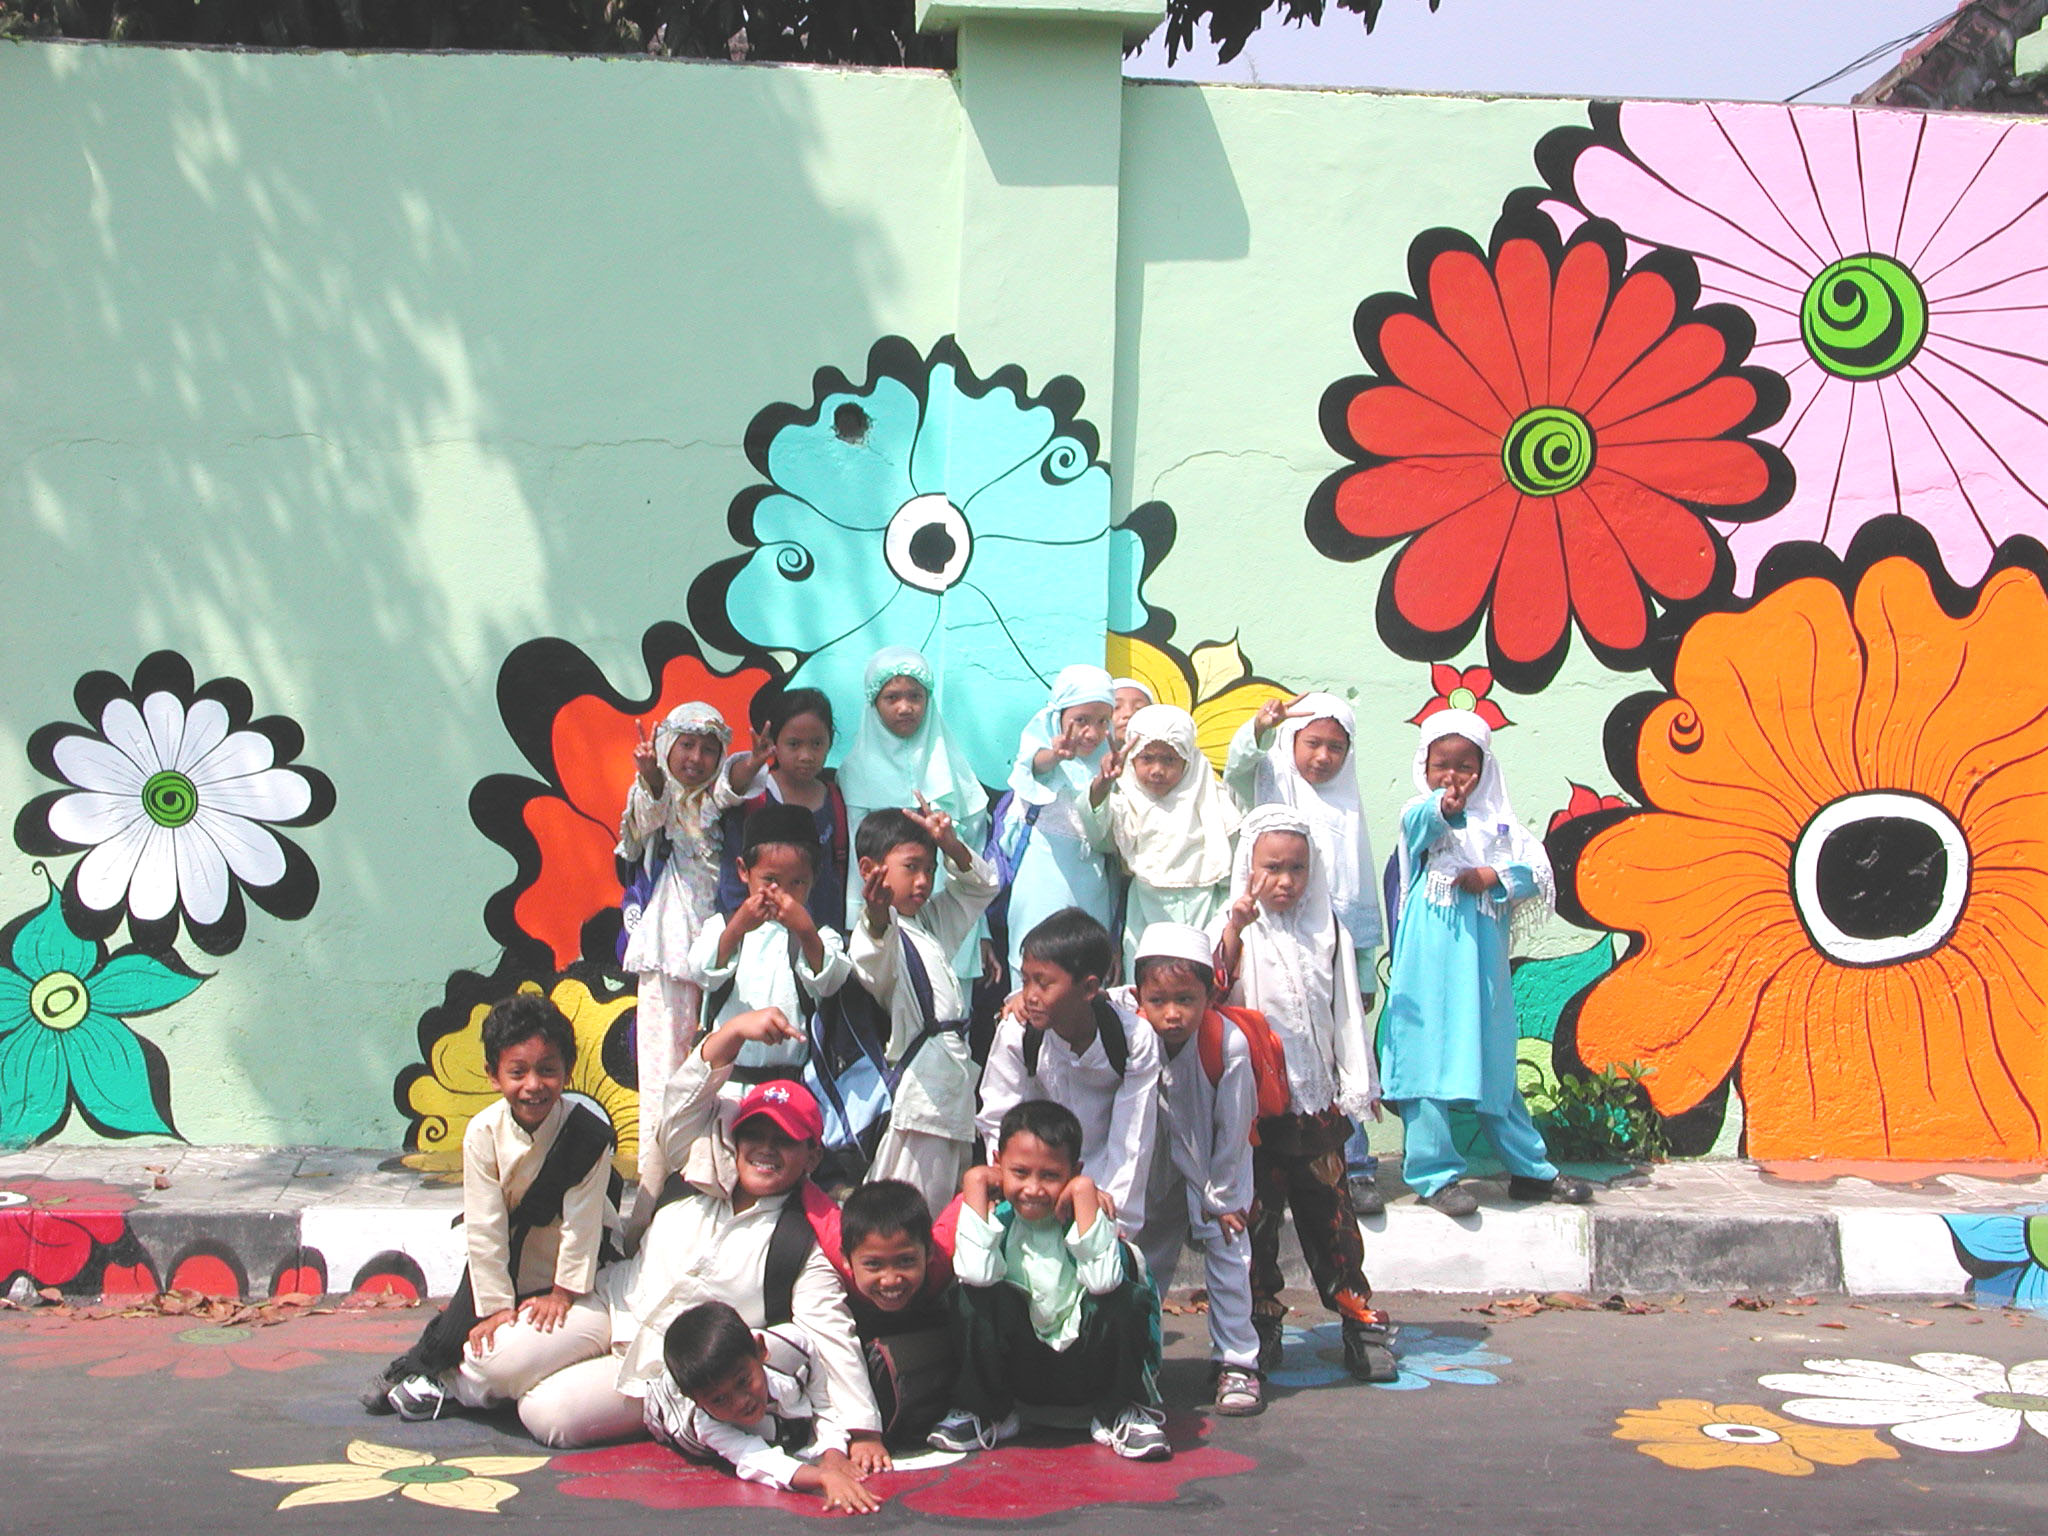 Megan -- kids in Muslim clothes in front of mural #7.jpg